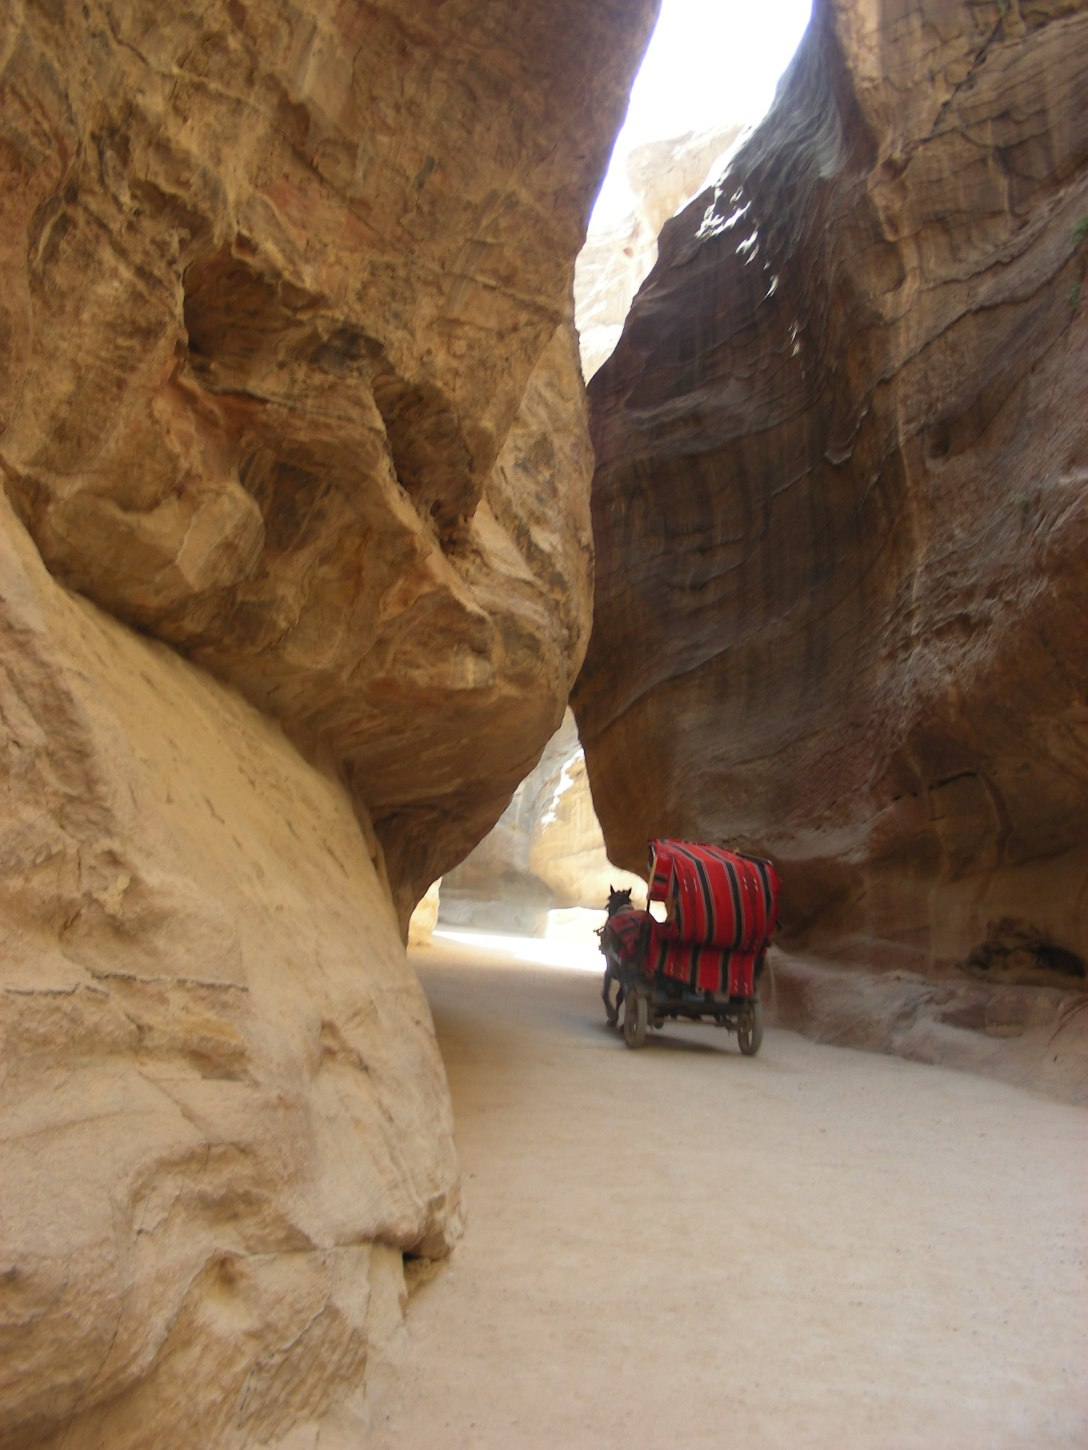 The horse-drawn carriages are an integral part of this sojourn at Petra